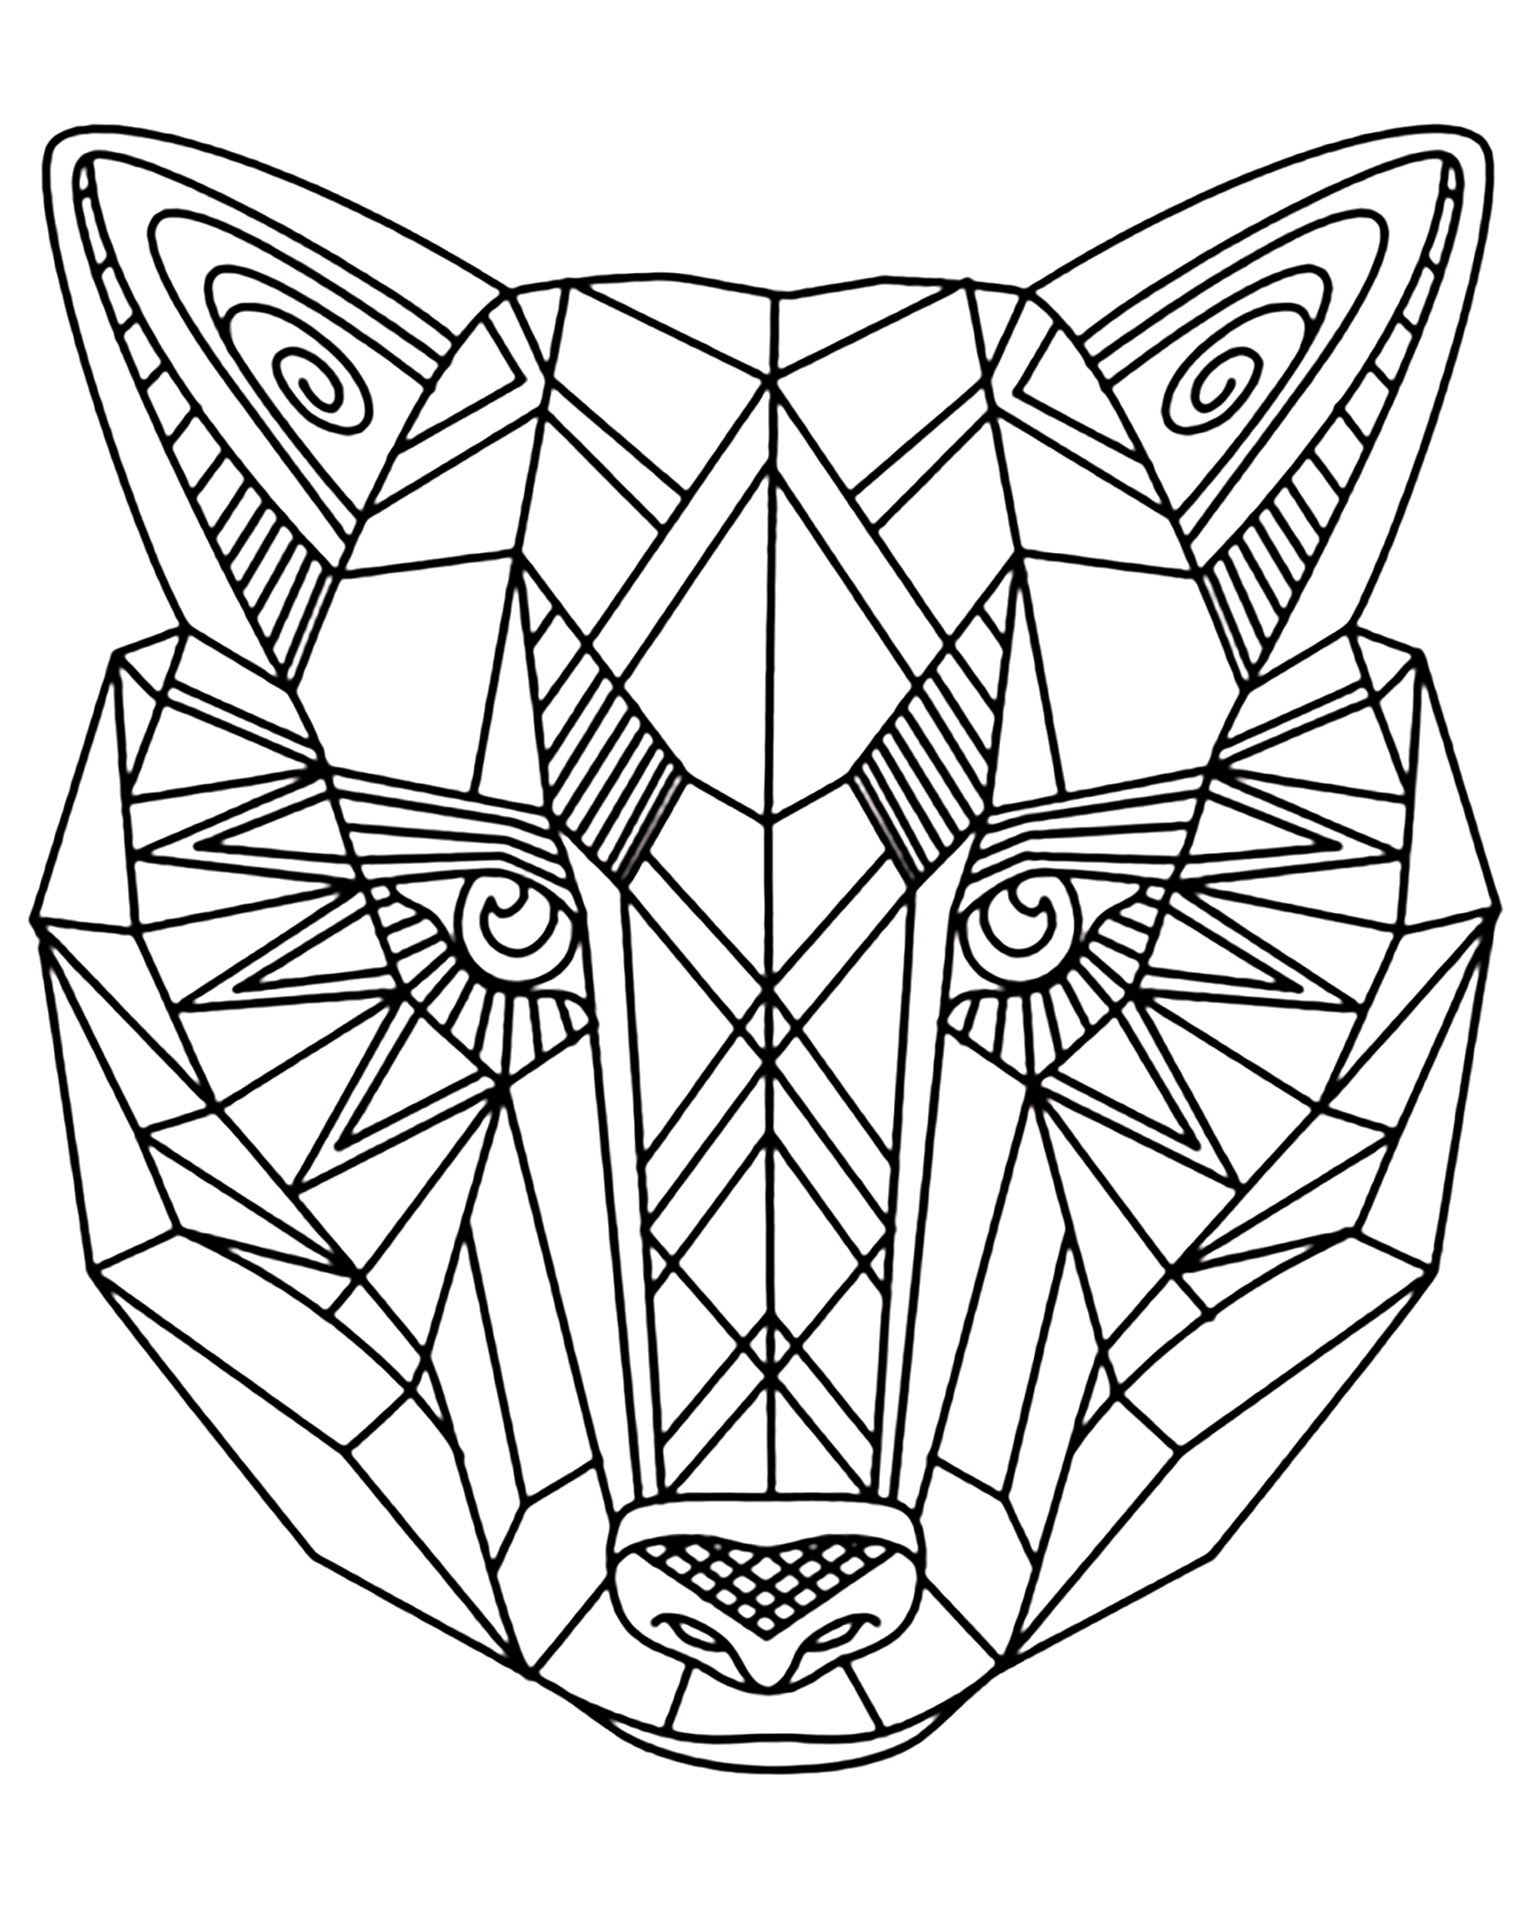 Wolf 1 animals coloring pages for adults justcolor for Coloring page of a wolf